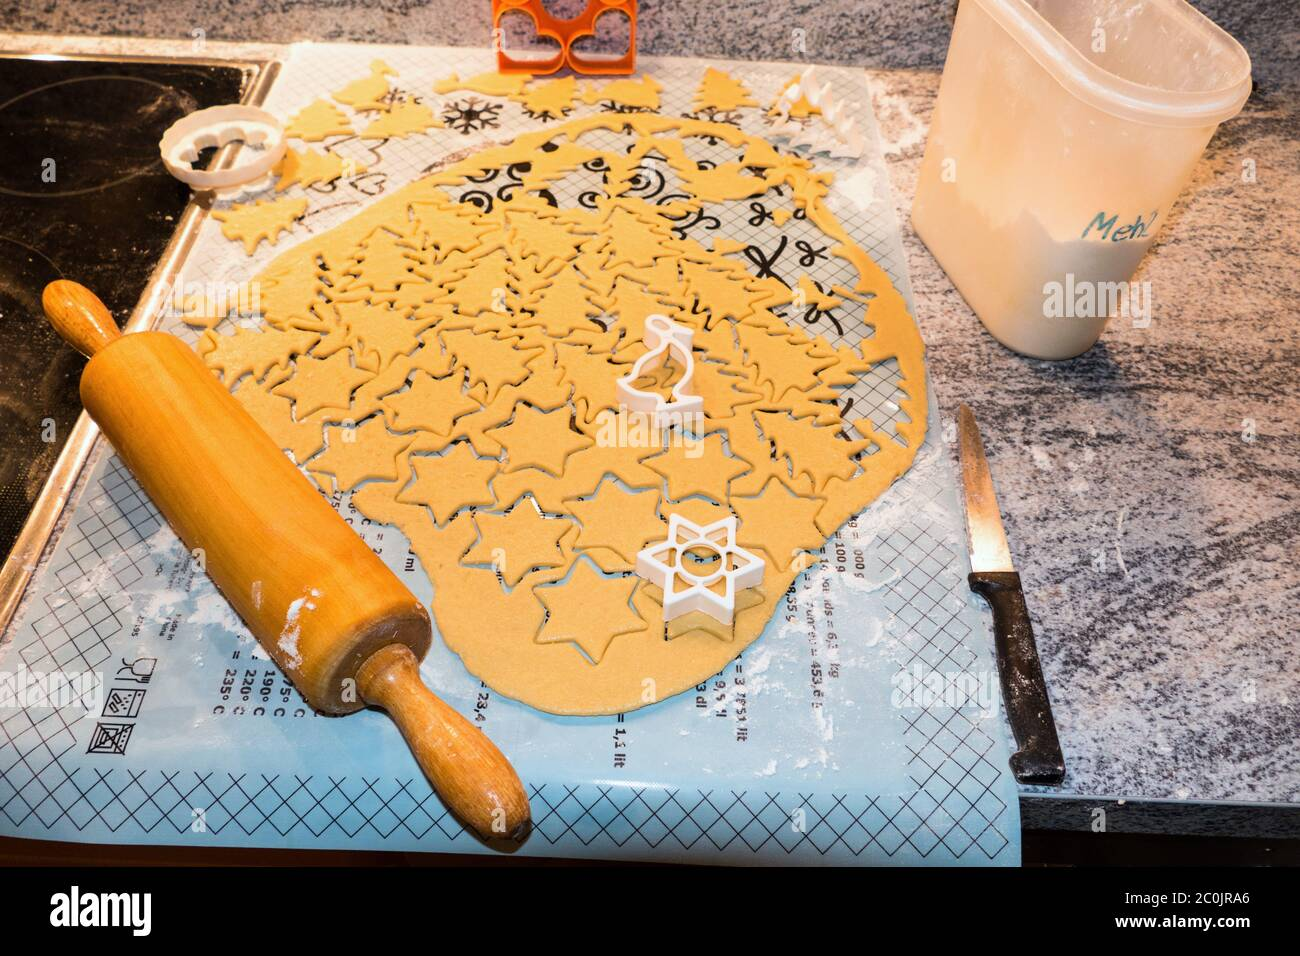 Christmas Biscuit Rolled Out And Biscuits Cut Out Ready To Bake With A Rolling Pin And Biscuit Cutters Stock Photo Alamy